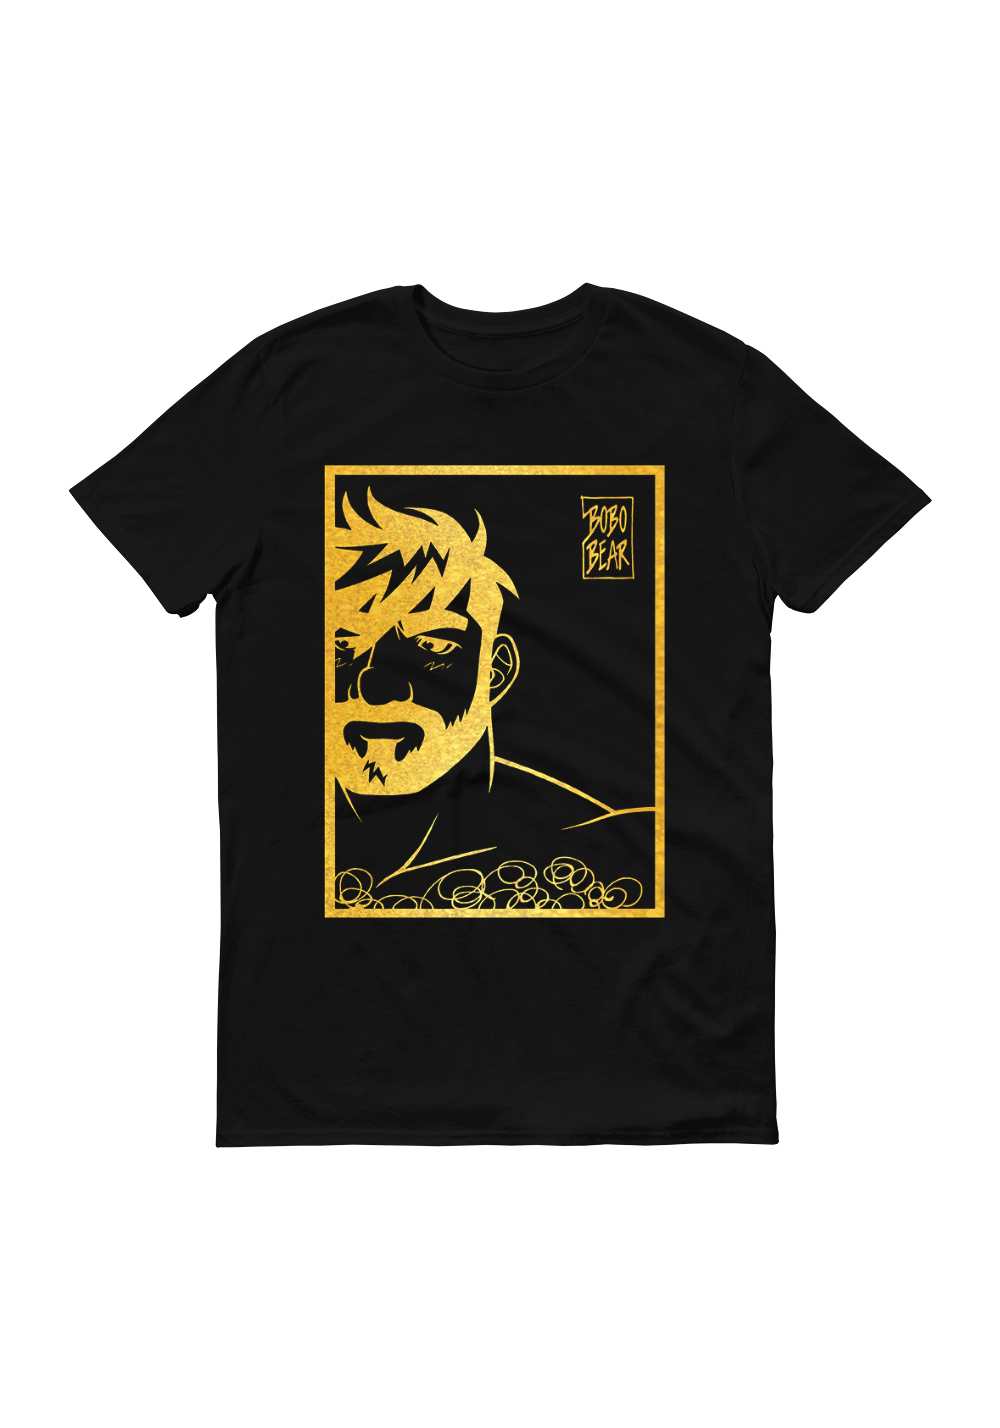 Bobo Bear Shirt Adam likes Black & Gold